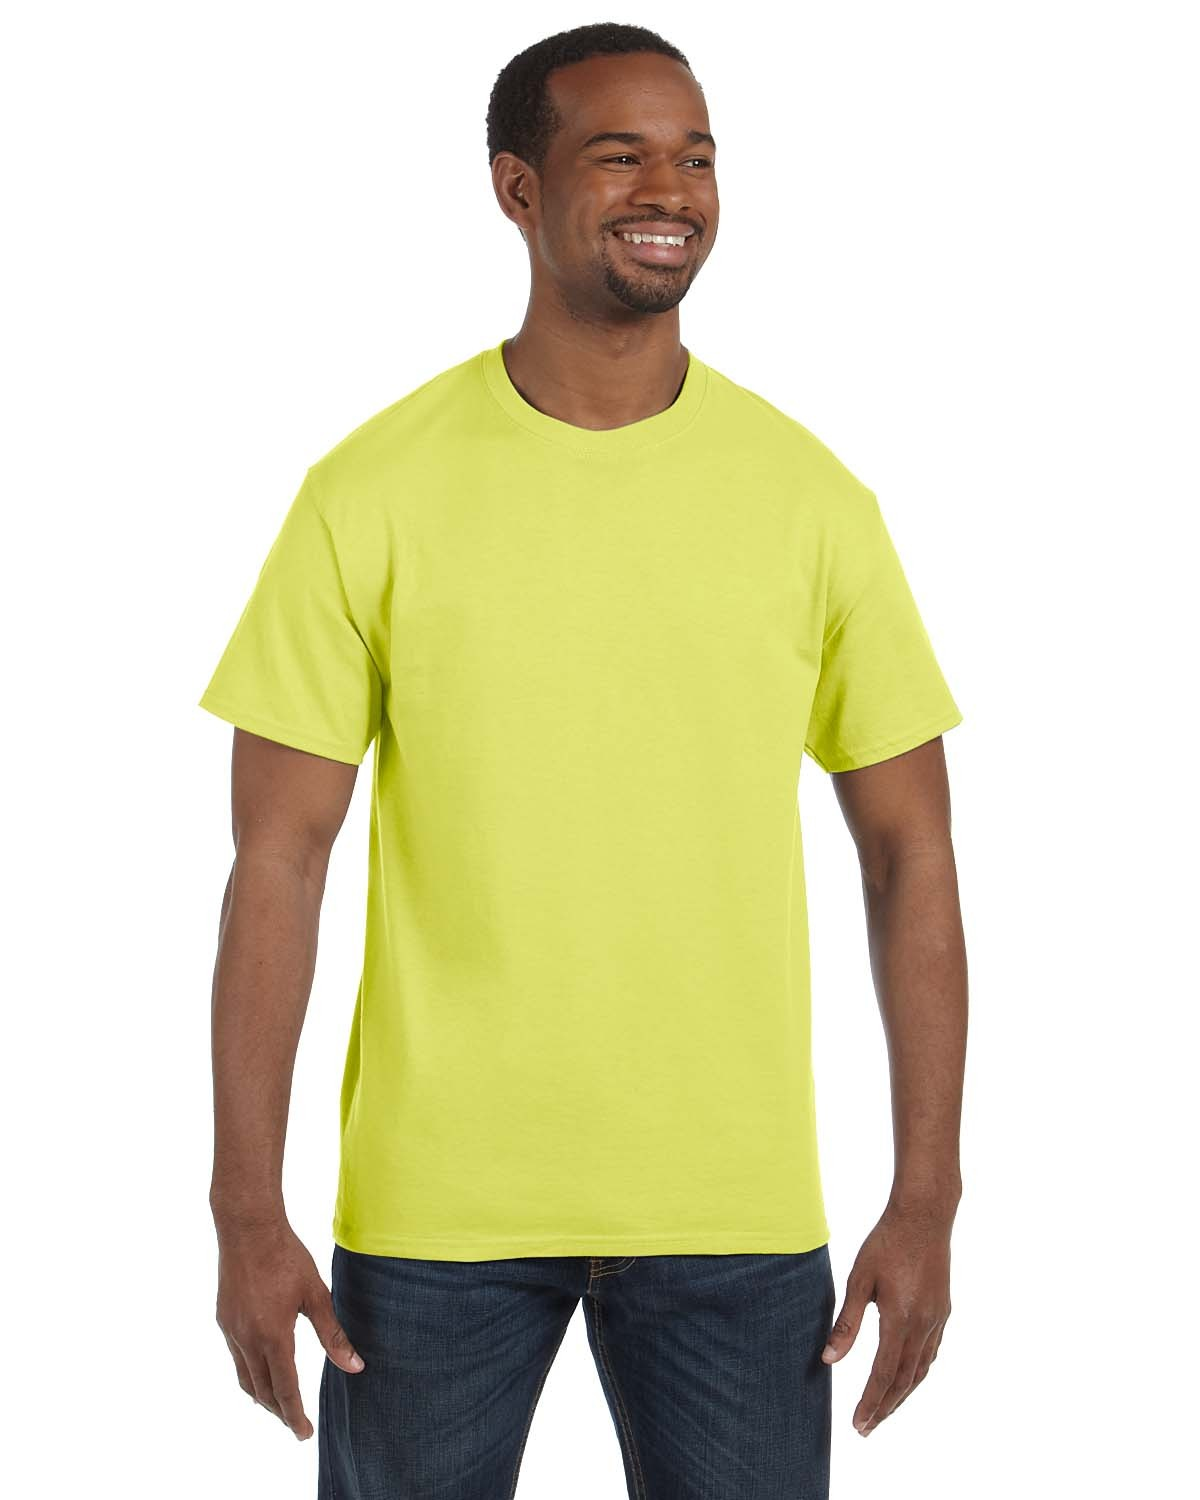 29M Jerzees SAFETY GREEN